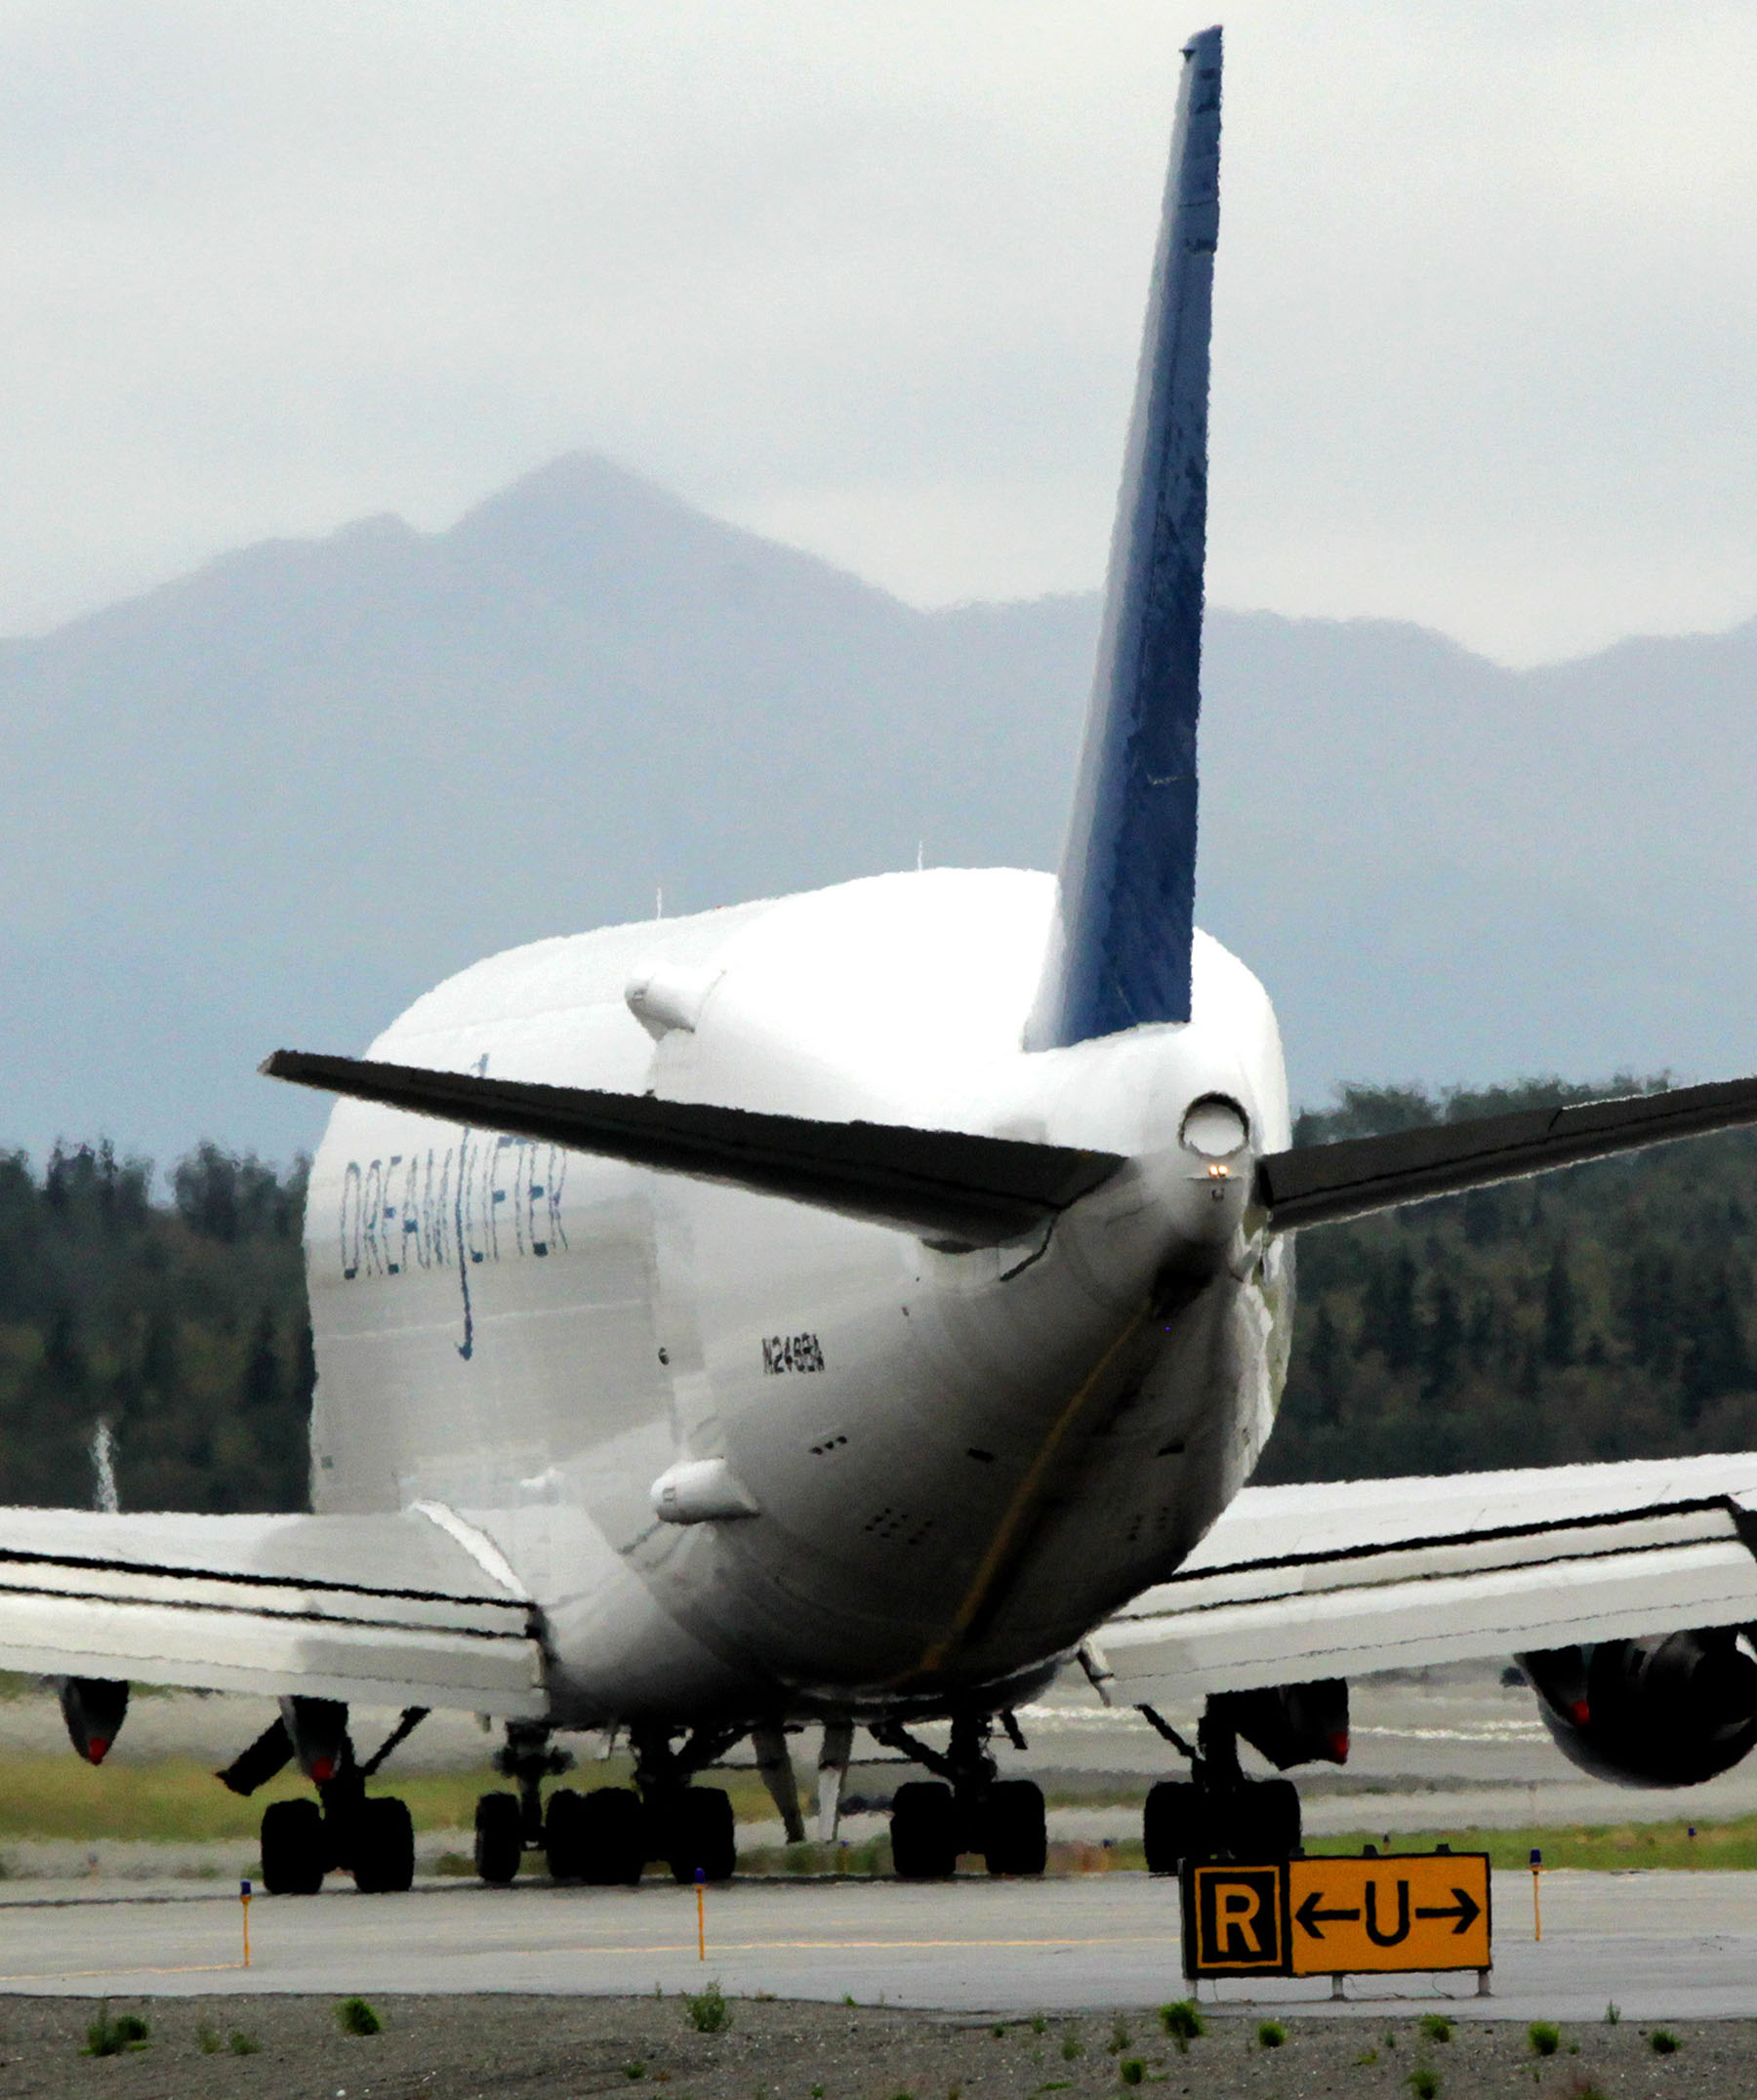 Alaska Air Cargo photography - Alaskafoto | Alaska Aircraft portraits & Aircraft photography